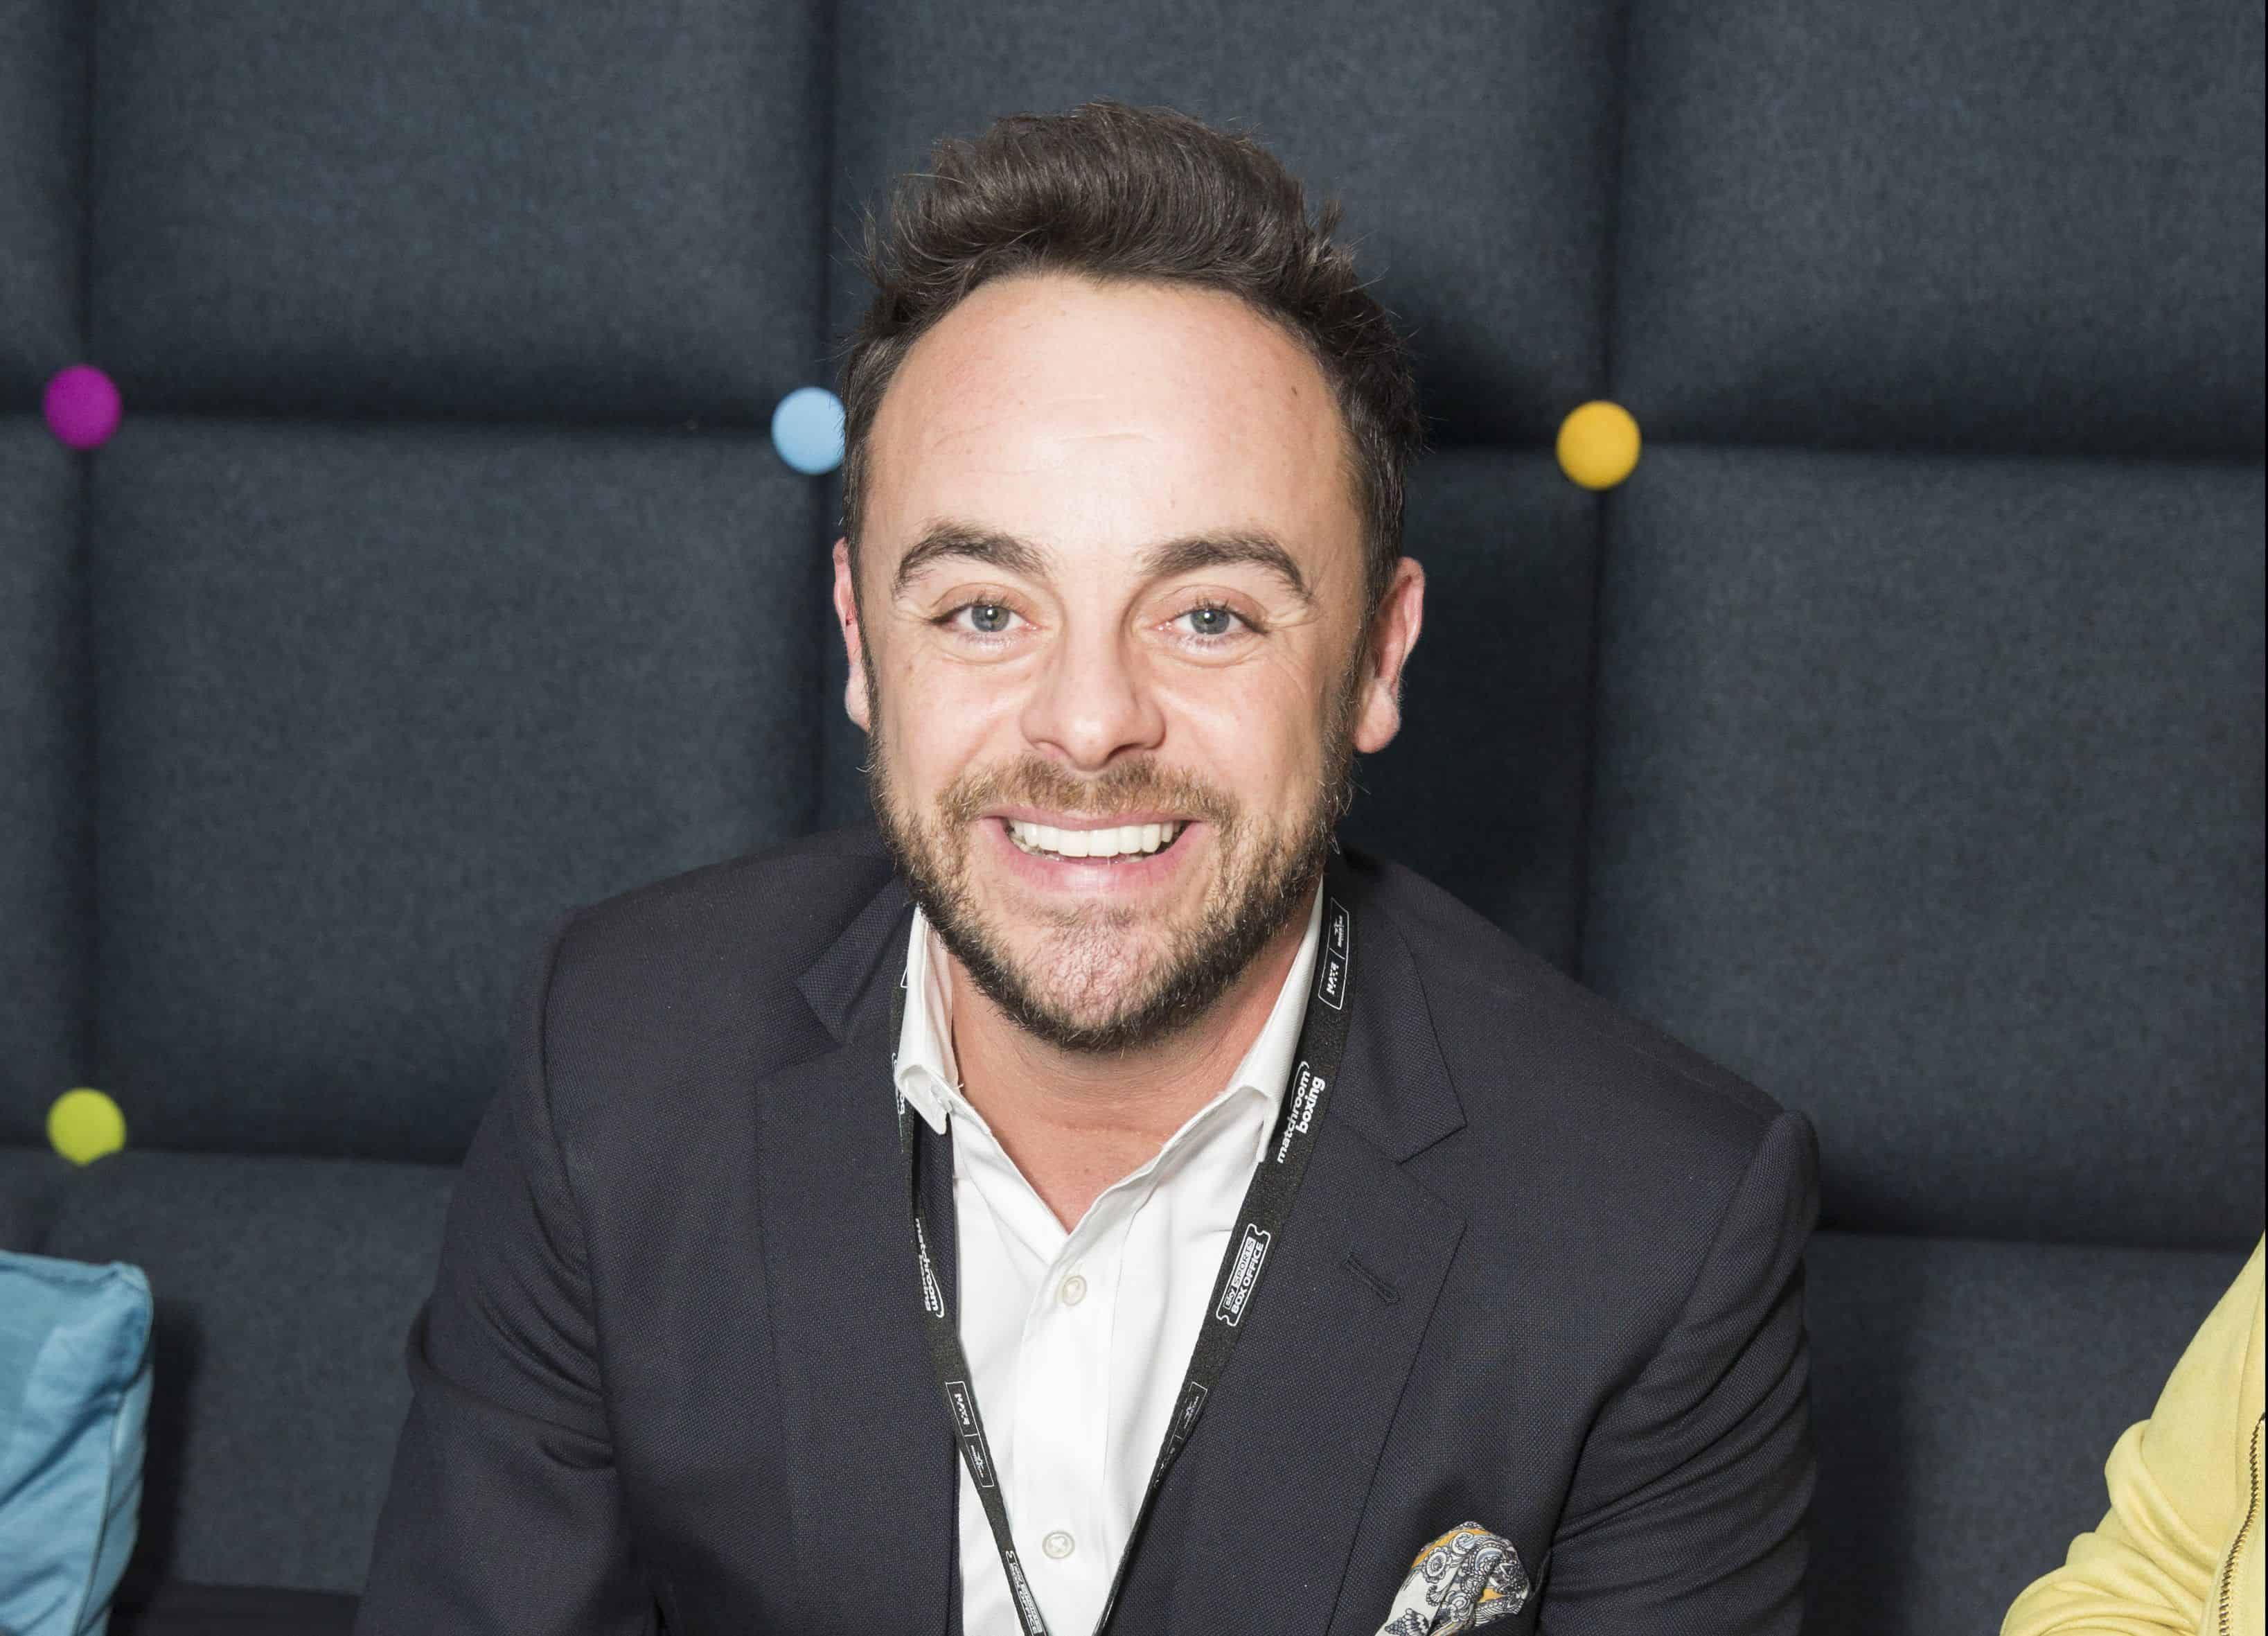 Ant McPartlin checks into rehab after becoming addicted to prescription drugs